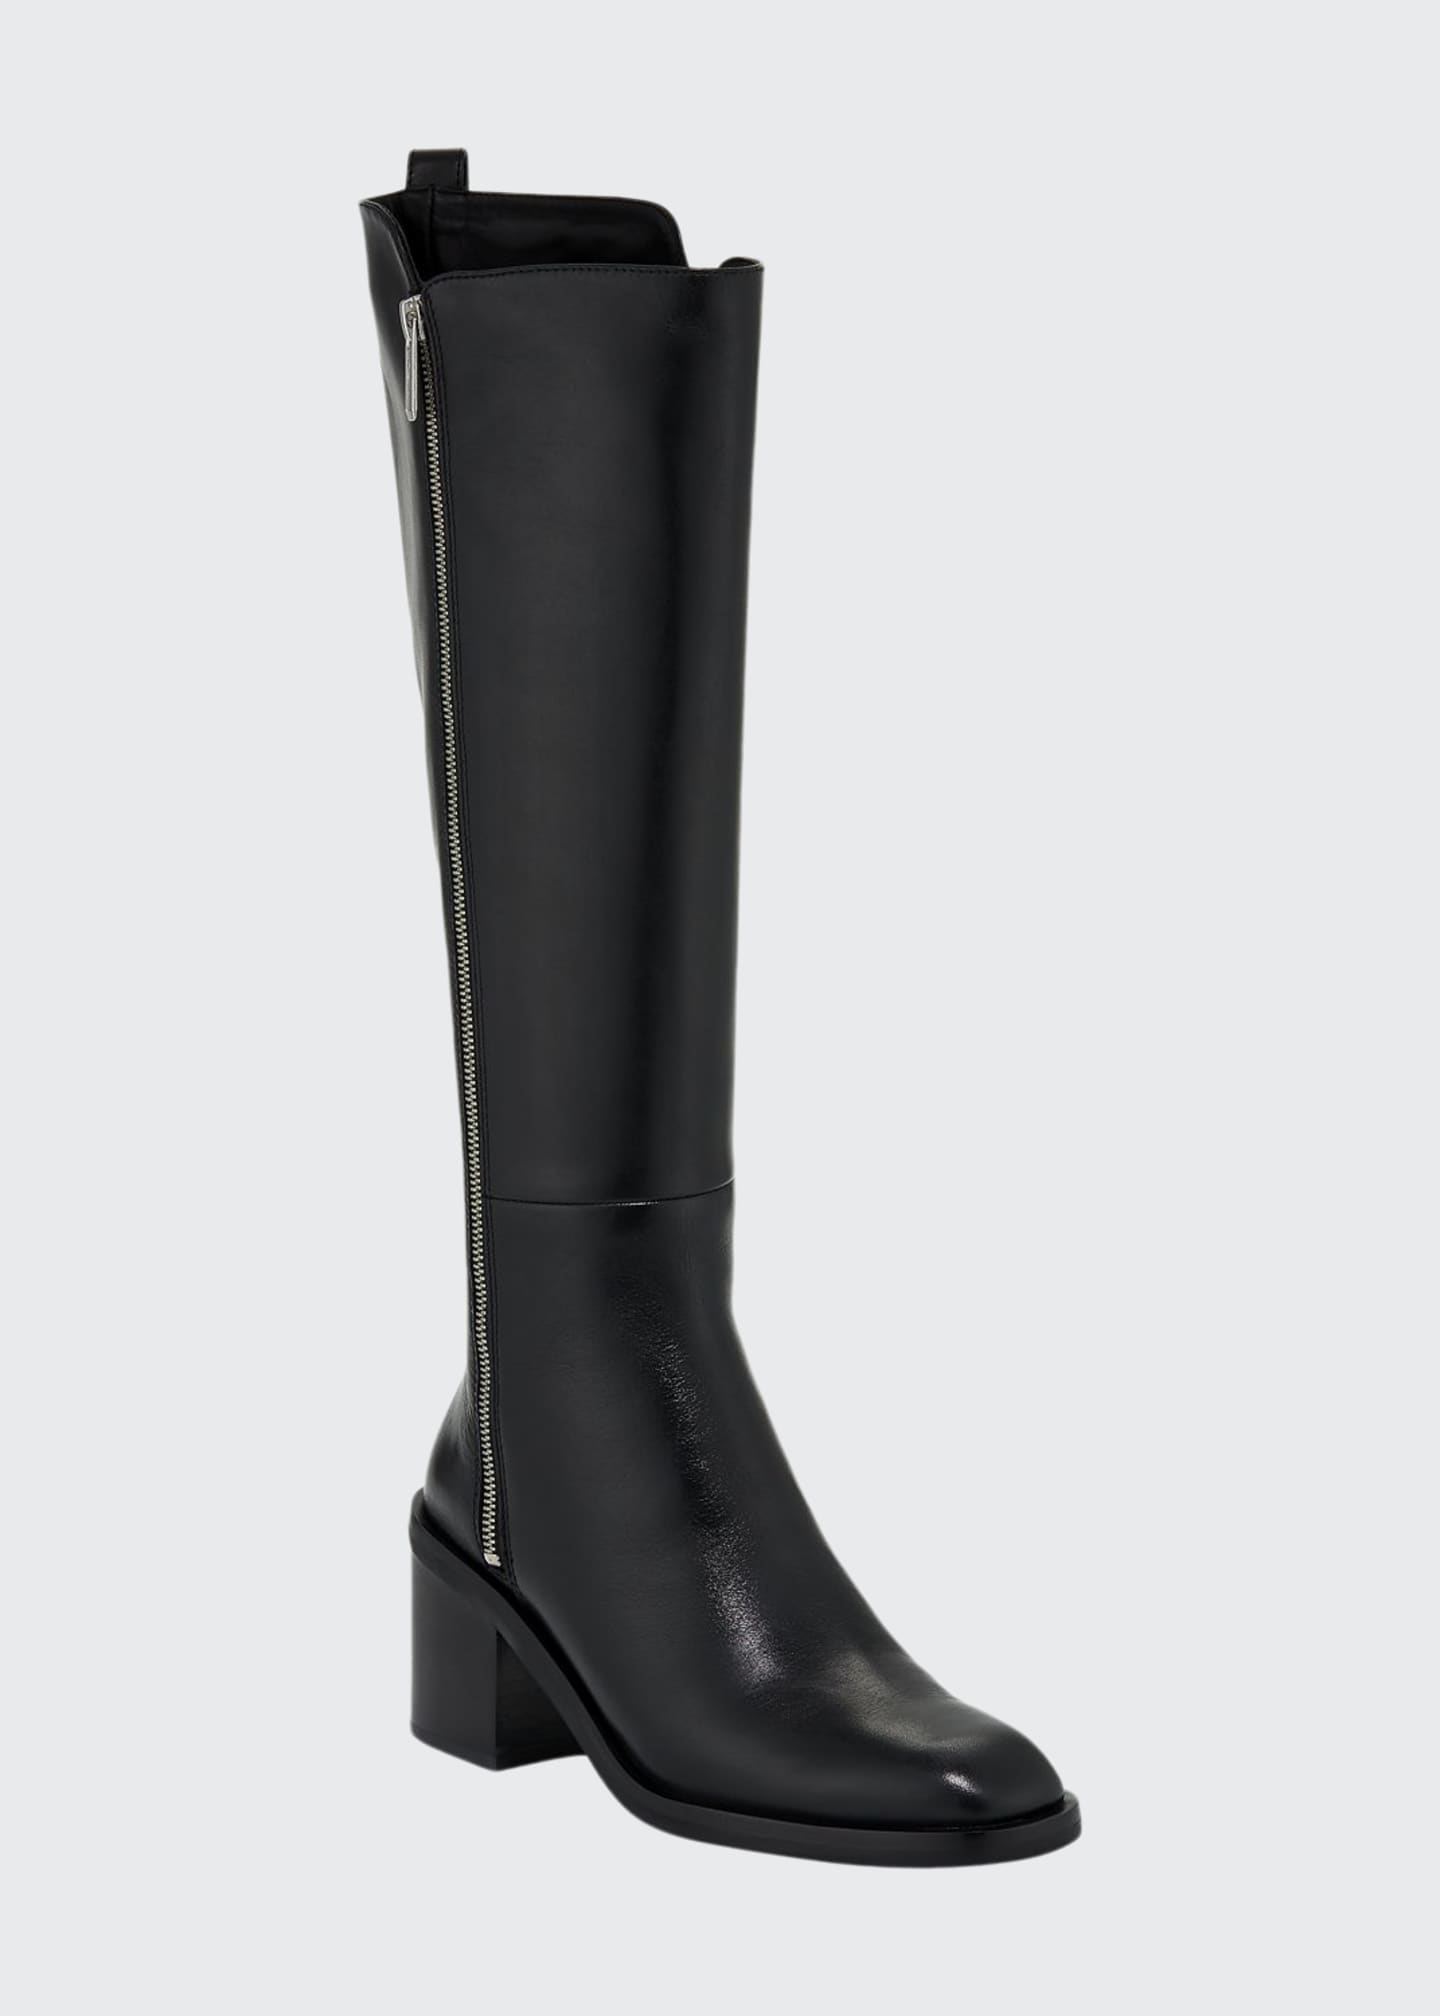 3.1 Phillip Lim Alexa Smooth Tall Knee Boots